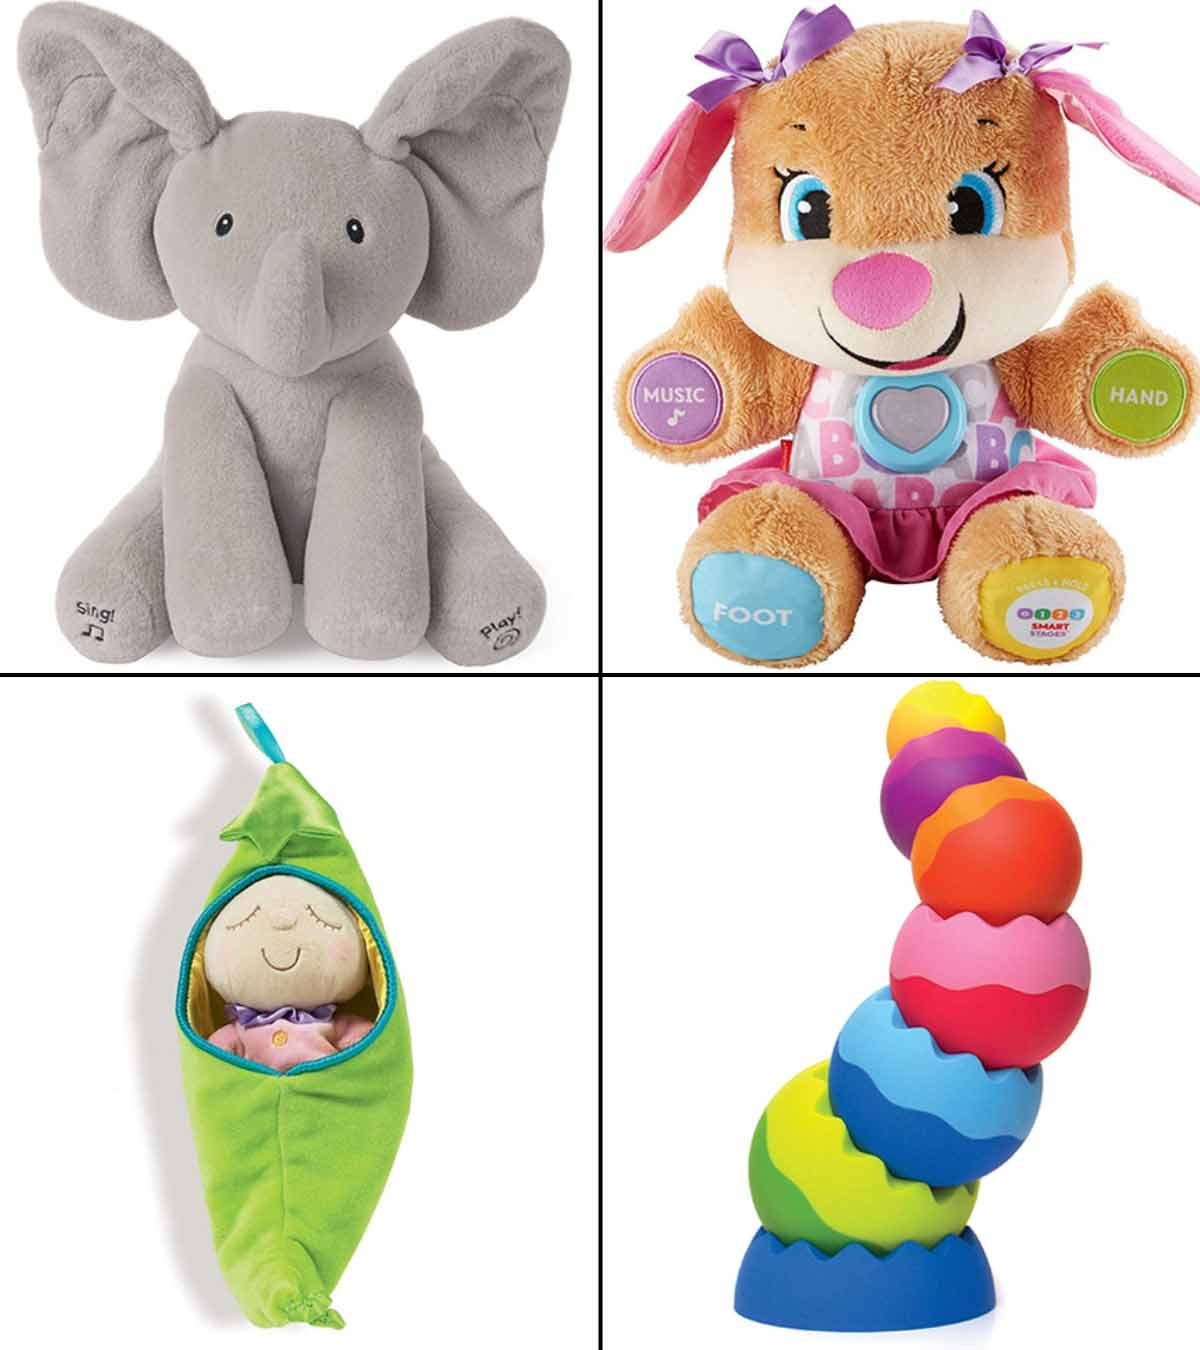 25 Best Toys For 8 Month Old Baby Of 2020